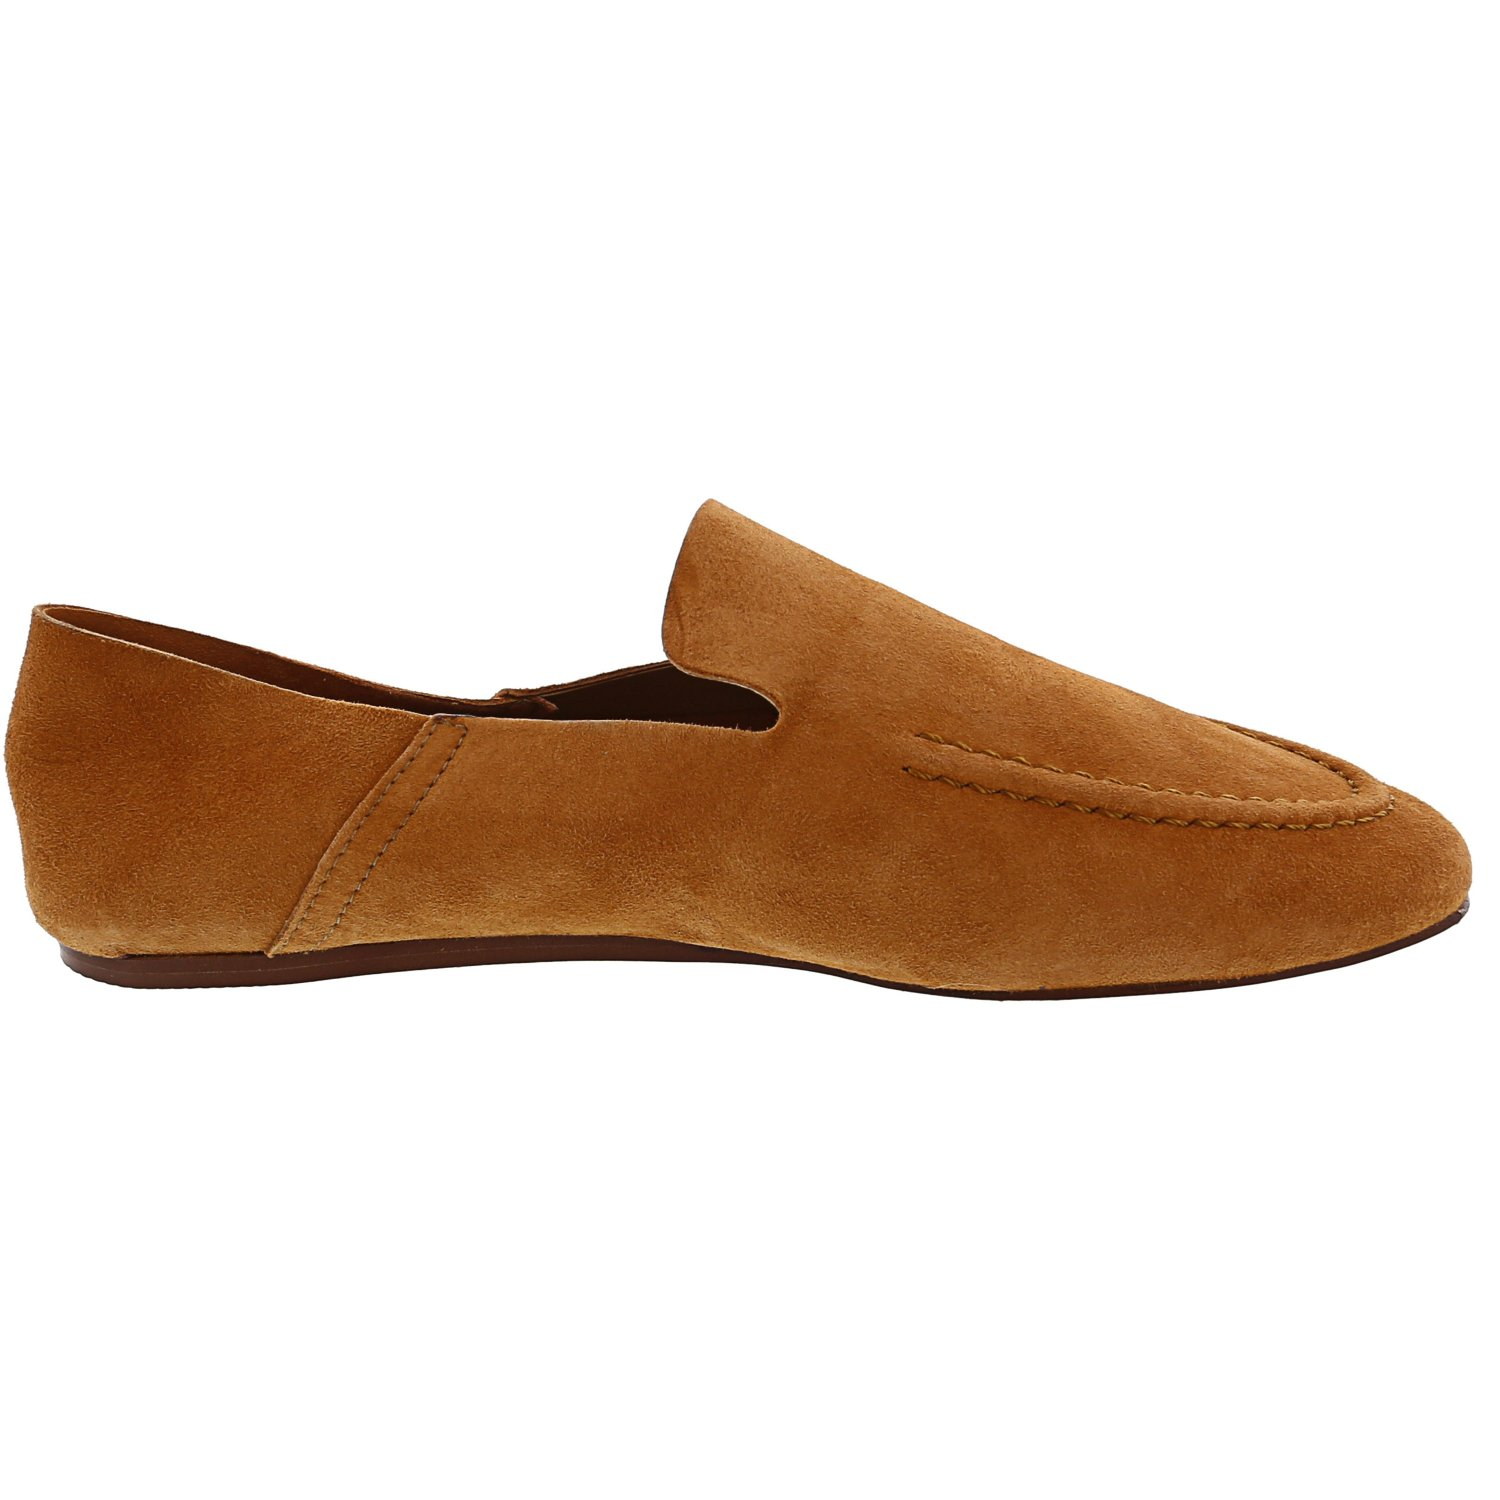 Steve-Madden-Women-039-s-Bethany-Suede-Ankle-High-Loafer thumbnail 5